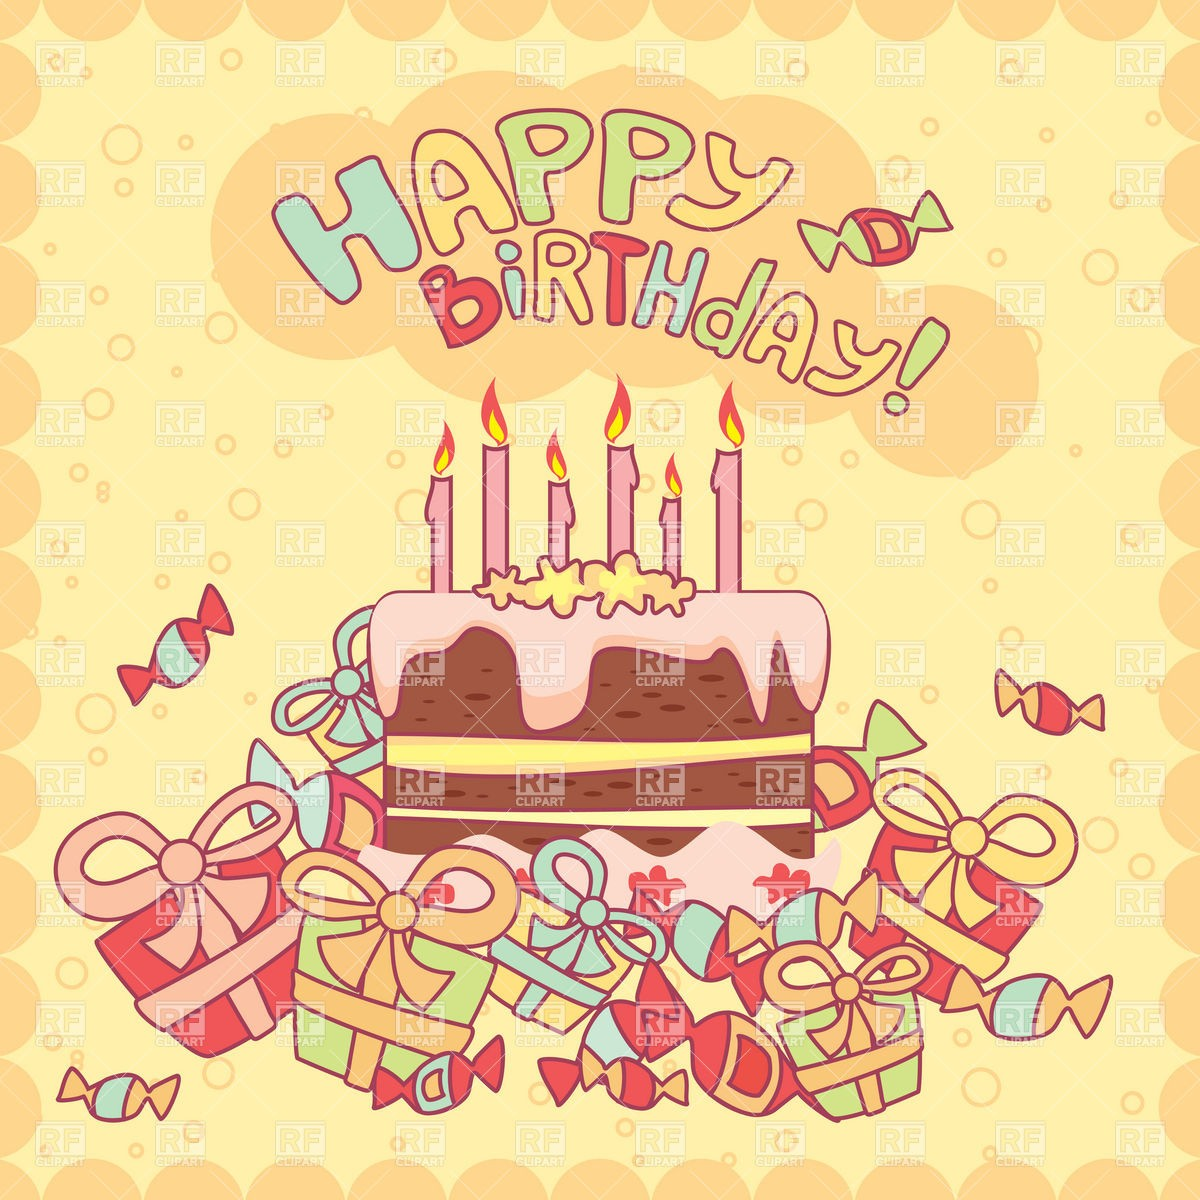 happy birthday card image download ; birthday-cards-images-free-download-beautiful-happy-birthday-card-with-cake-candles-and-ts-royalty-free-vector-of-birthday-cards-images-free-download